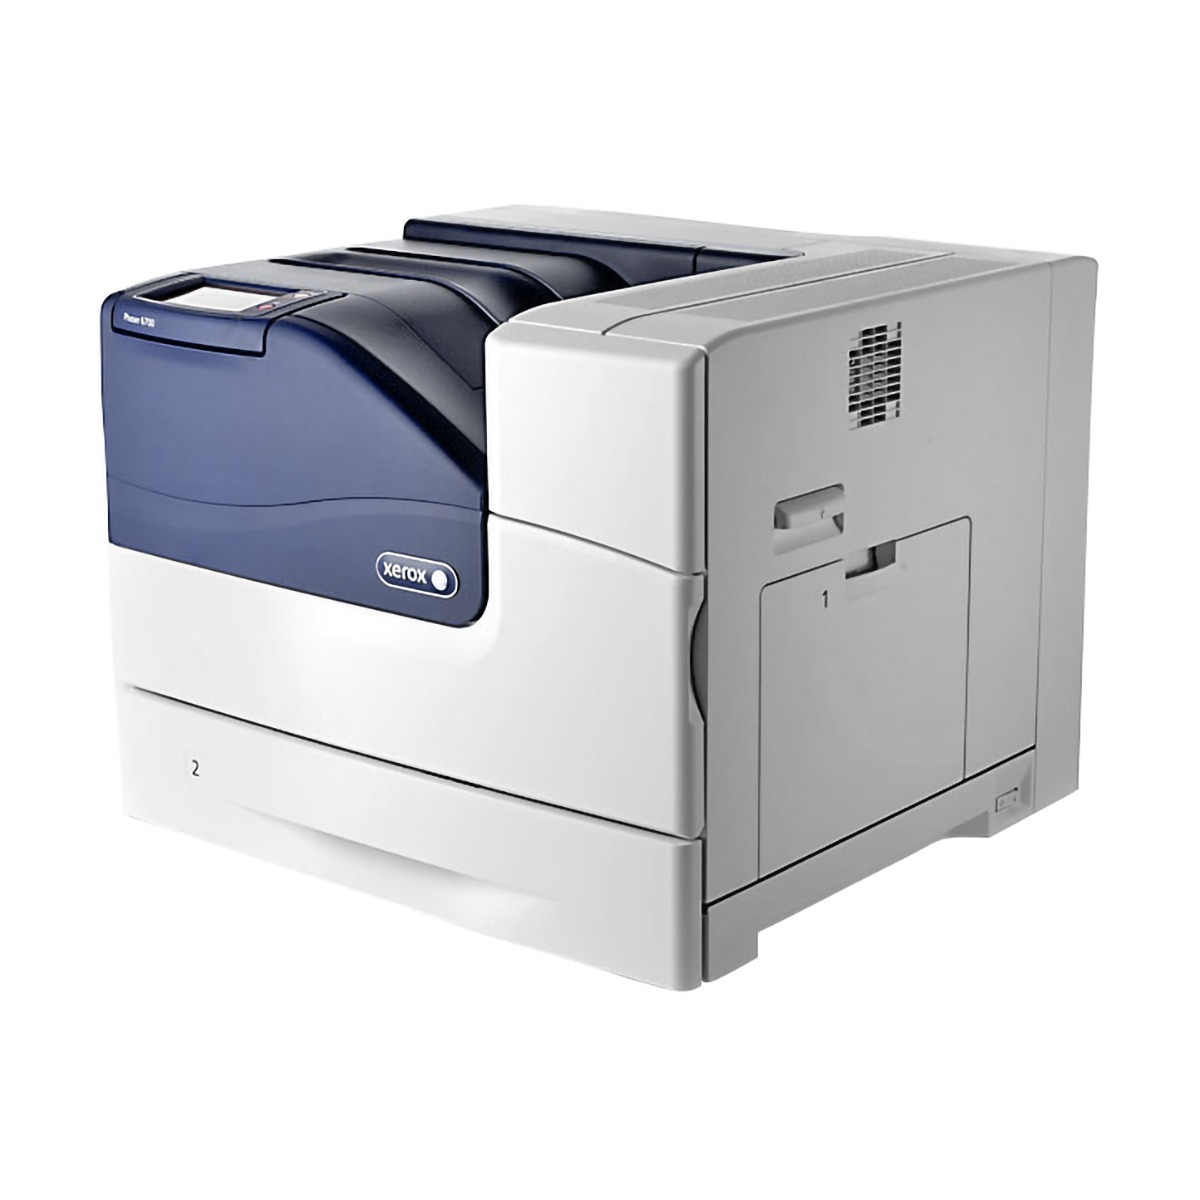 XEROX PHASER 6700 DRIVER DOWNLOAD FREE